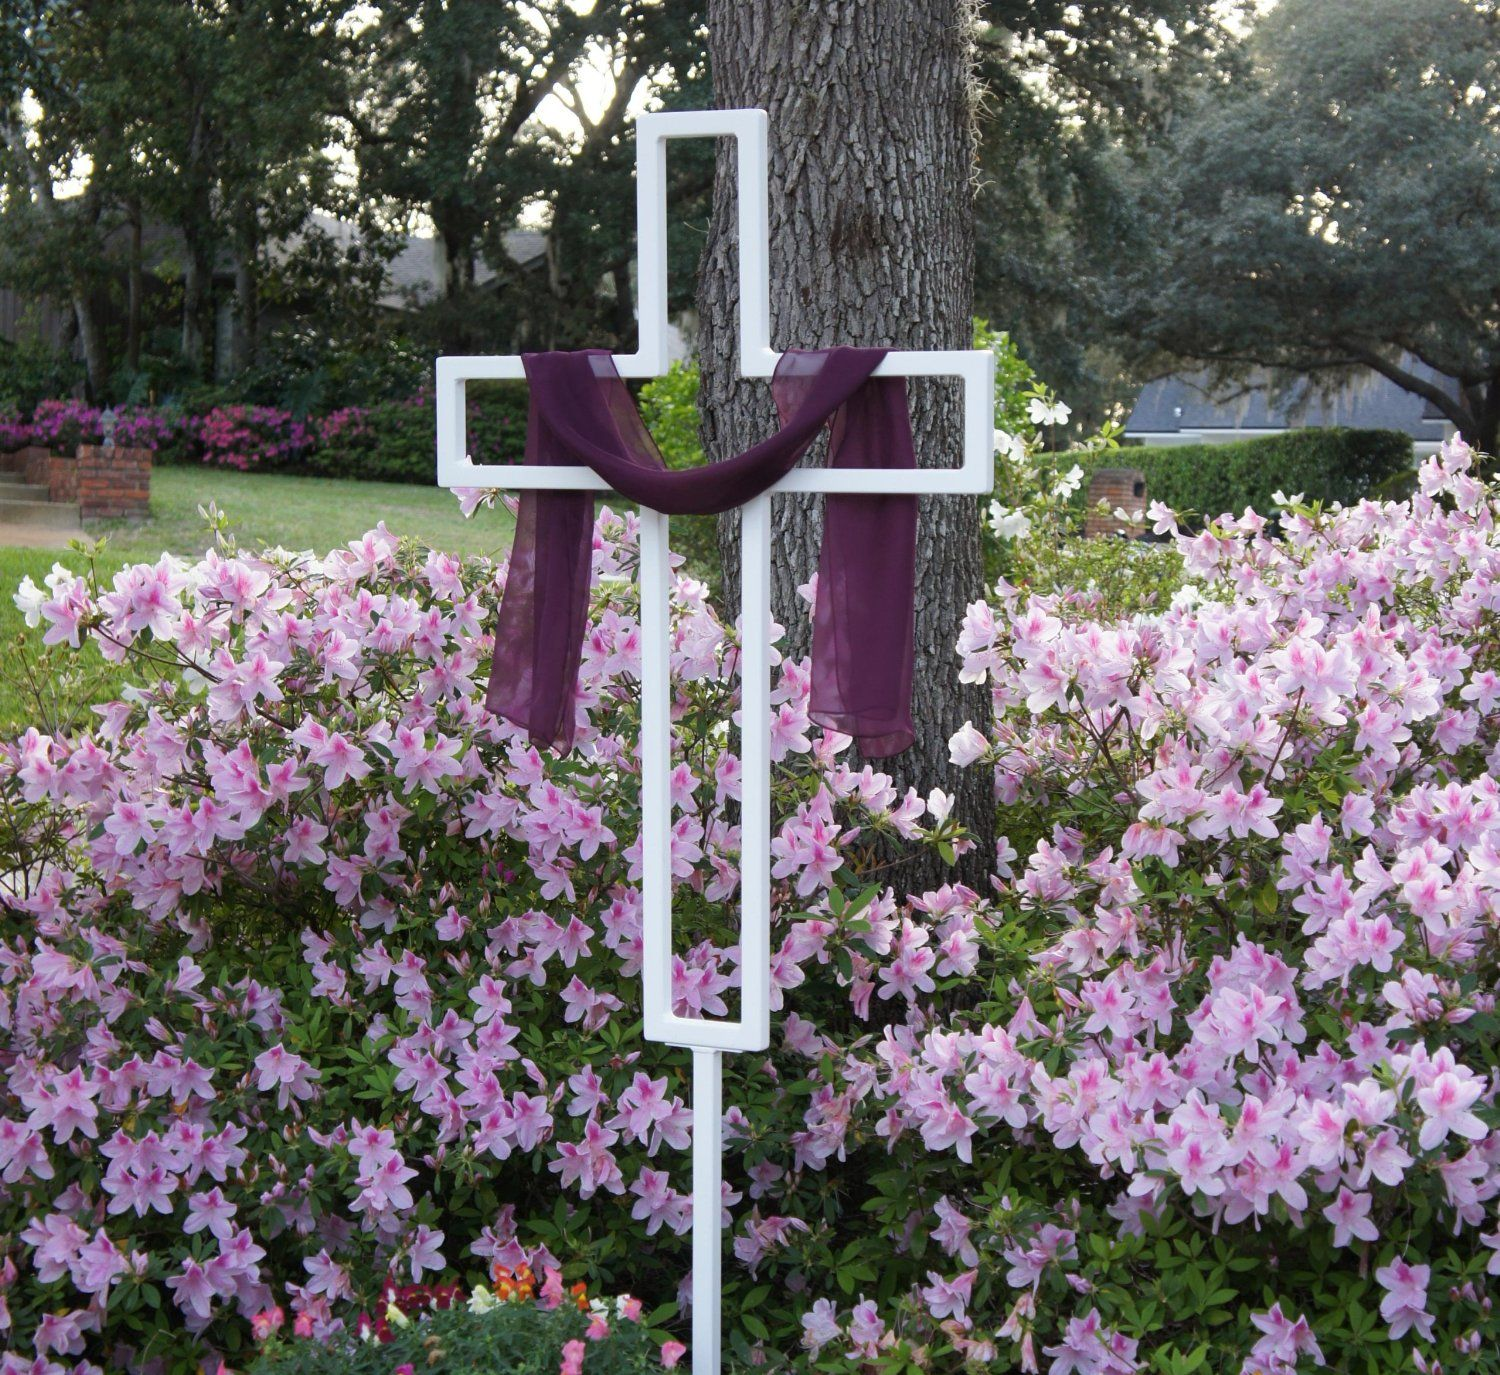 Religious easter yard decorations - Religious Easter Decor Teak Isle Tall Easter Yard Cross For Lawn Or Garden Check Price